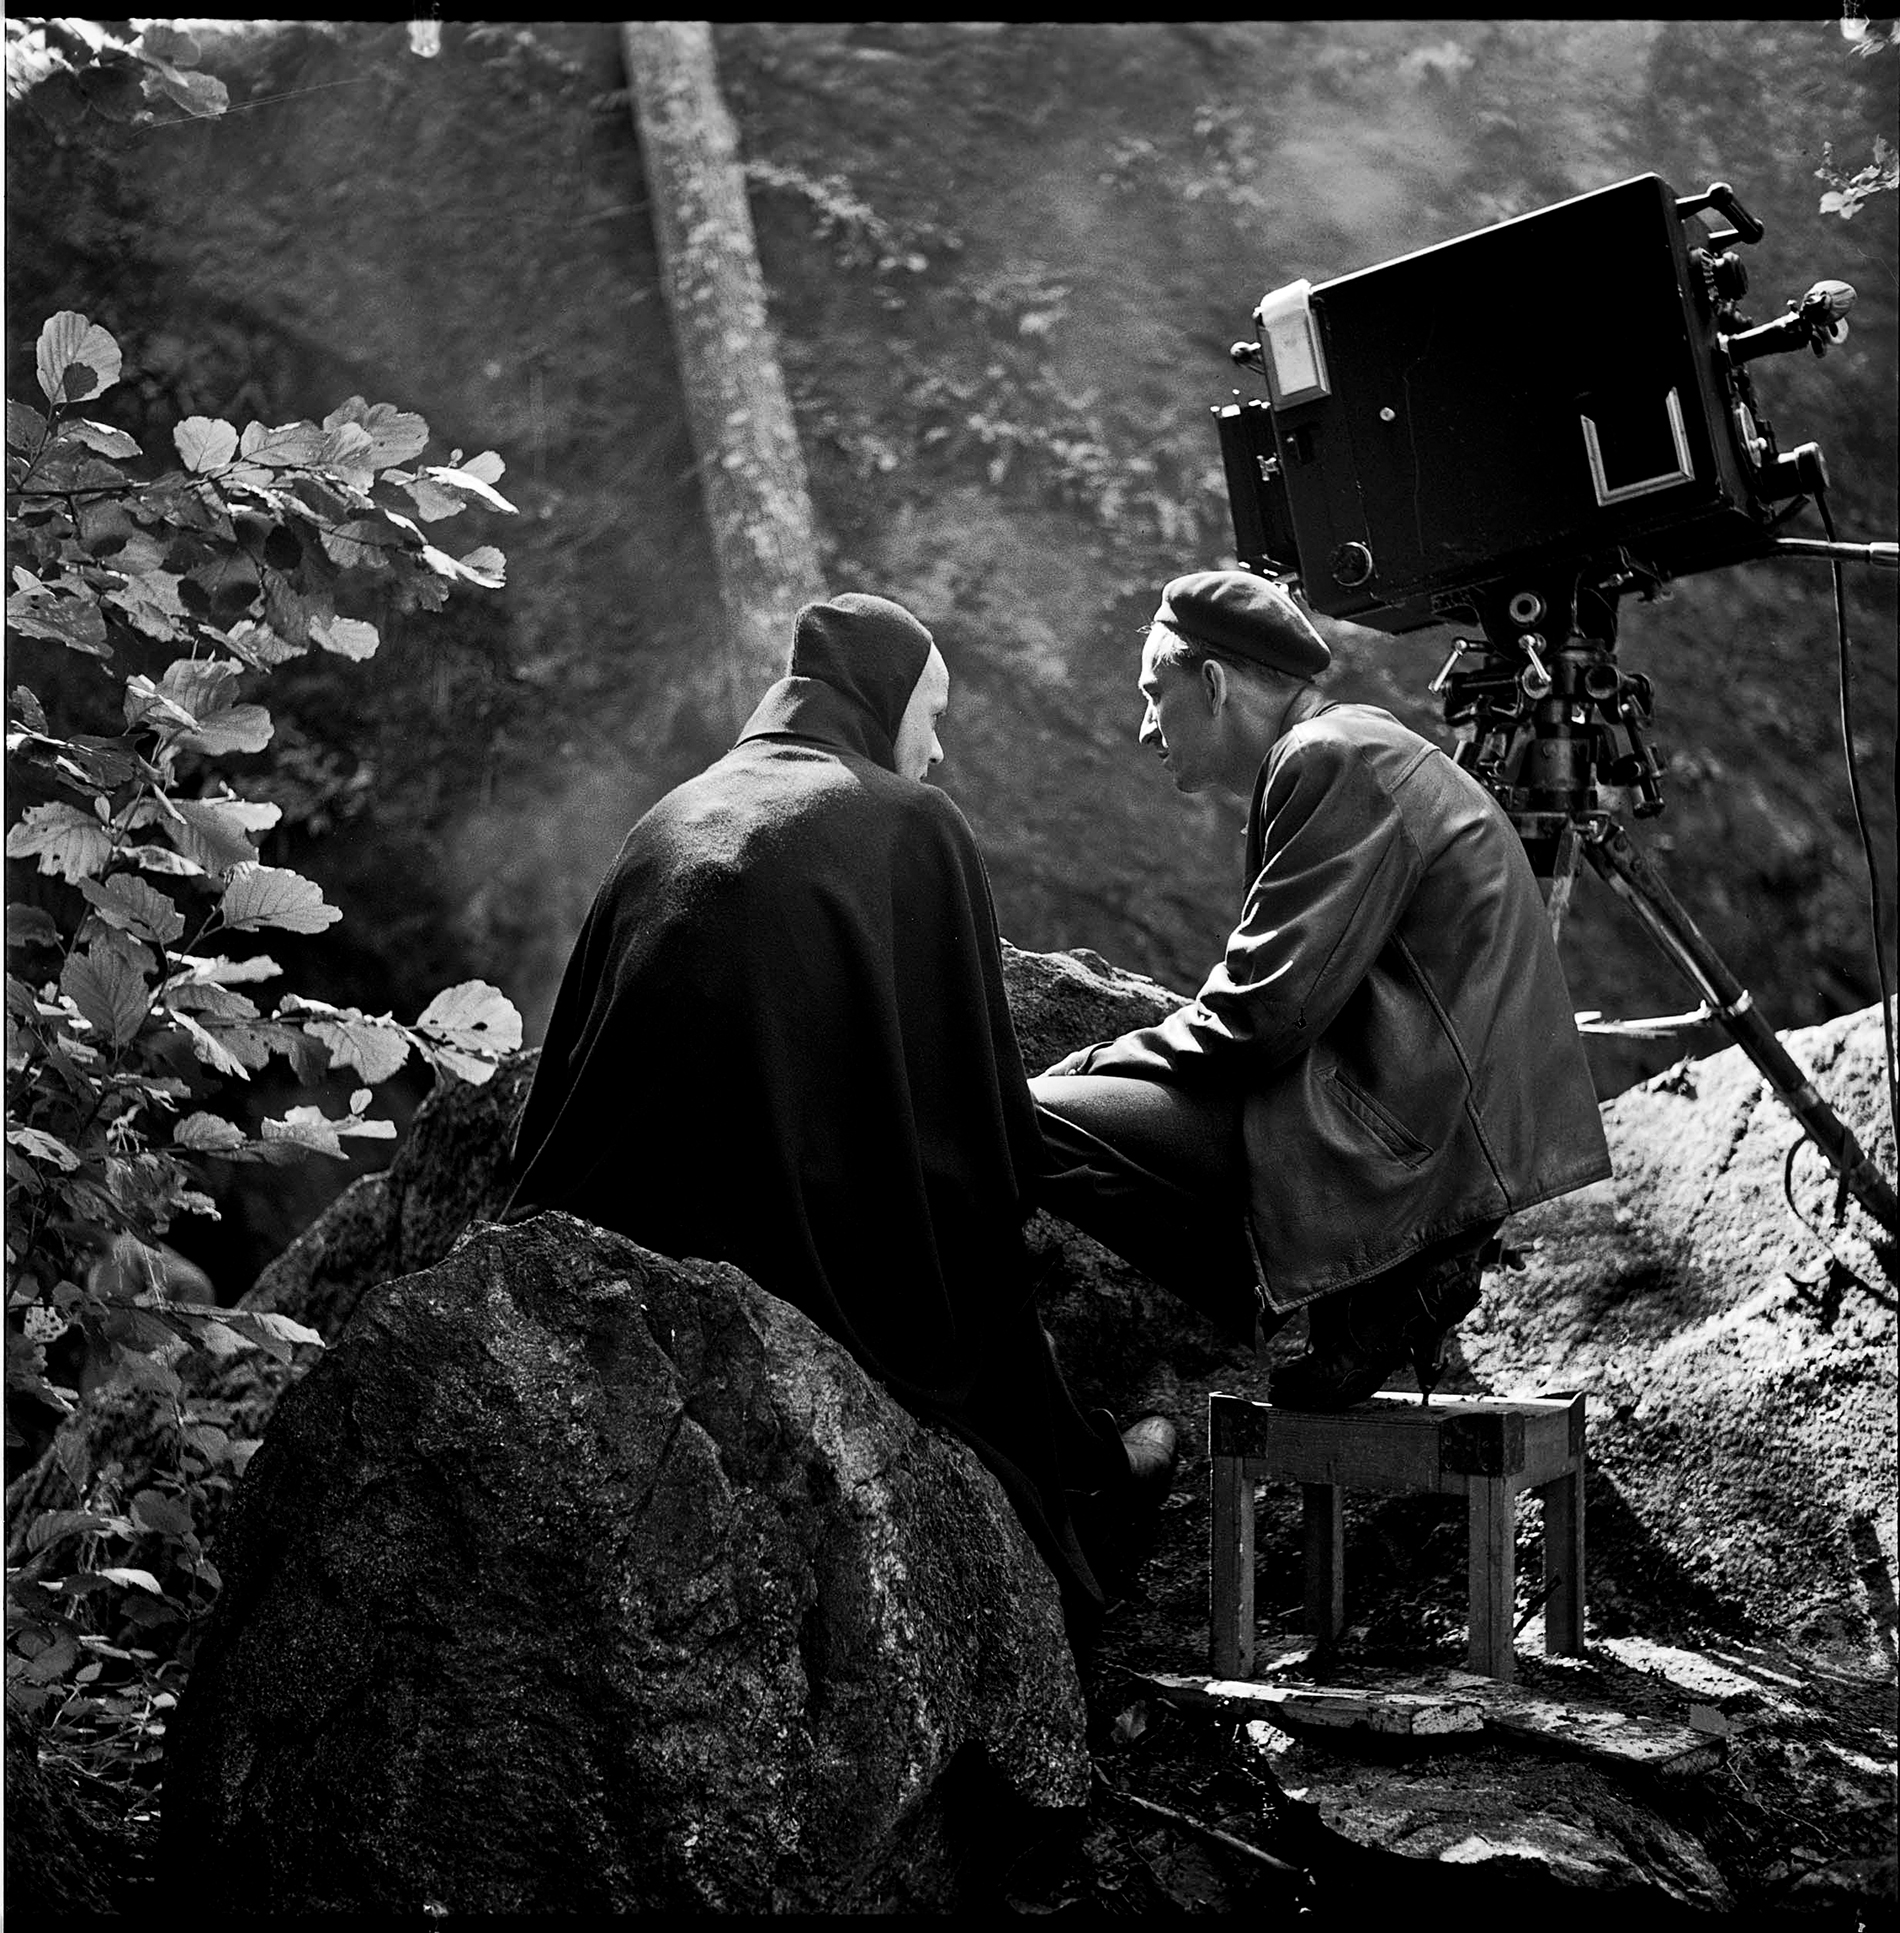 Bergman A Year in a Life by Jane Magnusson © Svensk Filmindustri